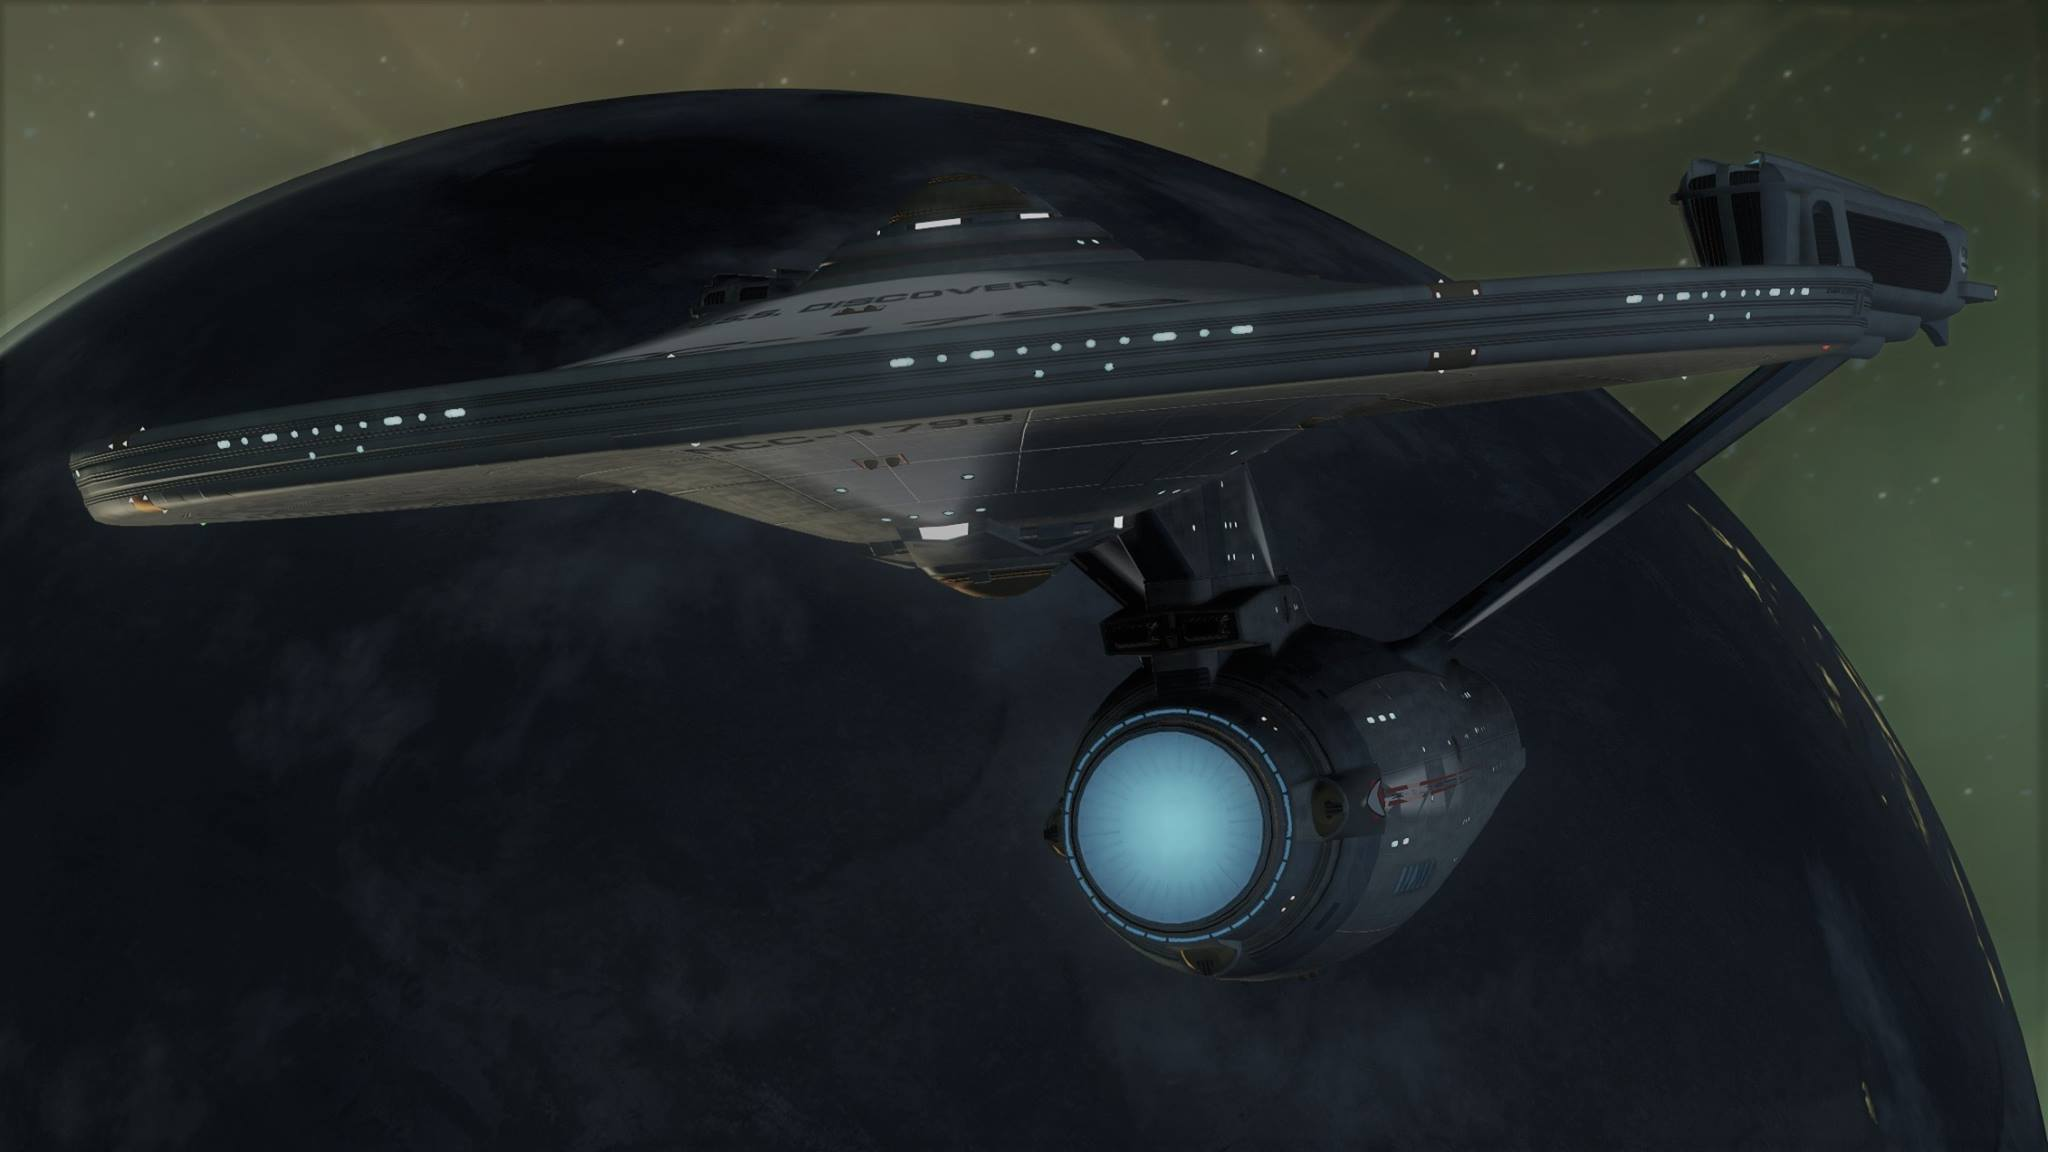 Uss-Discovery (1)